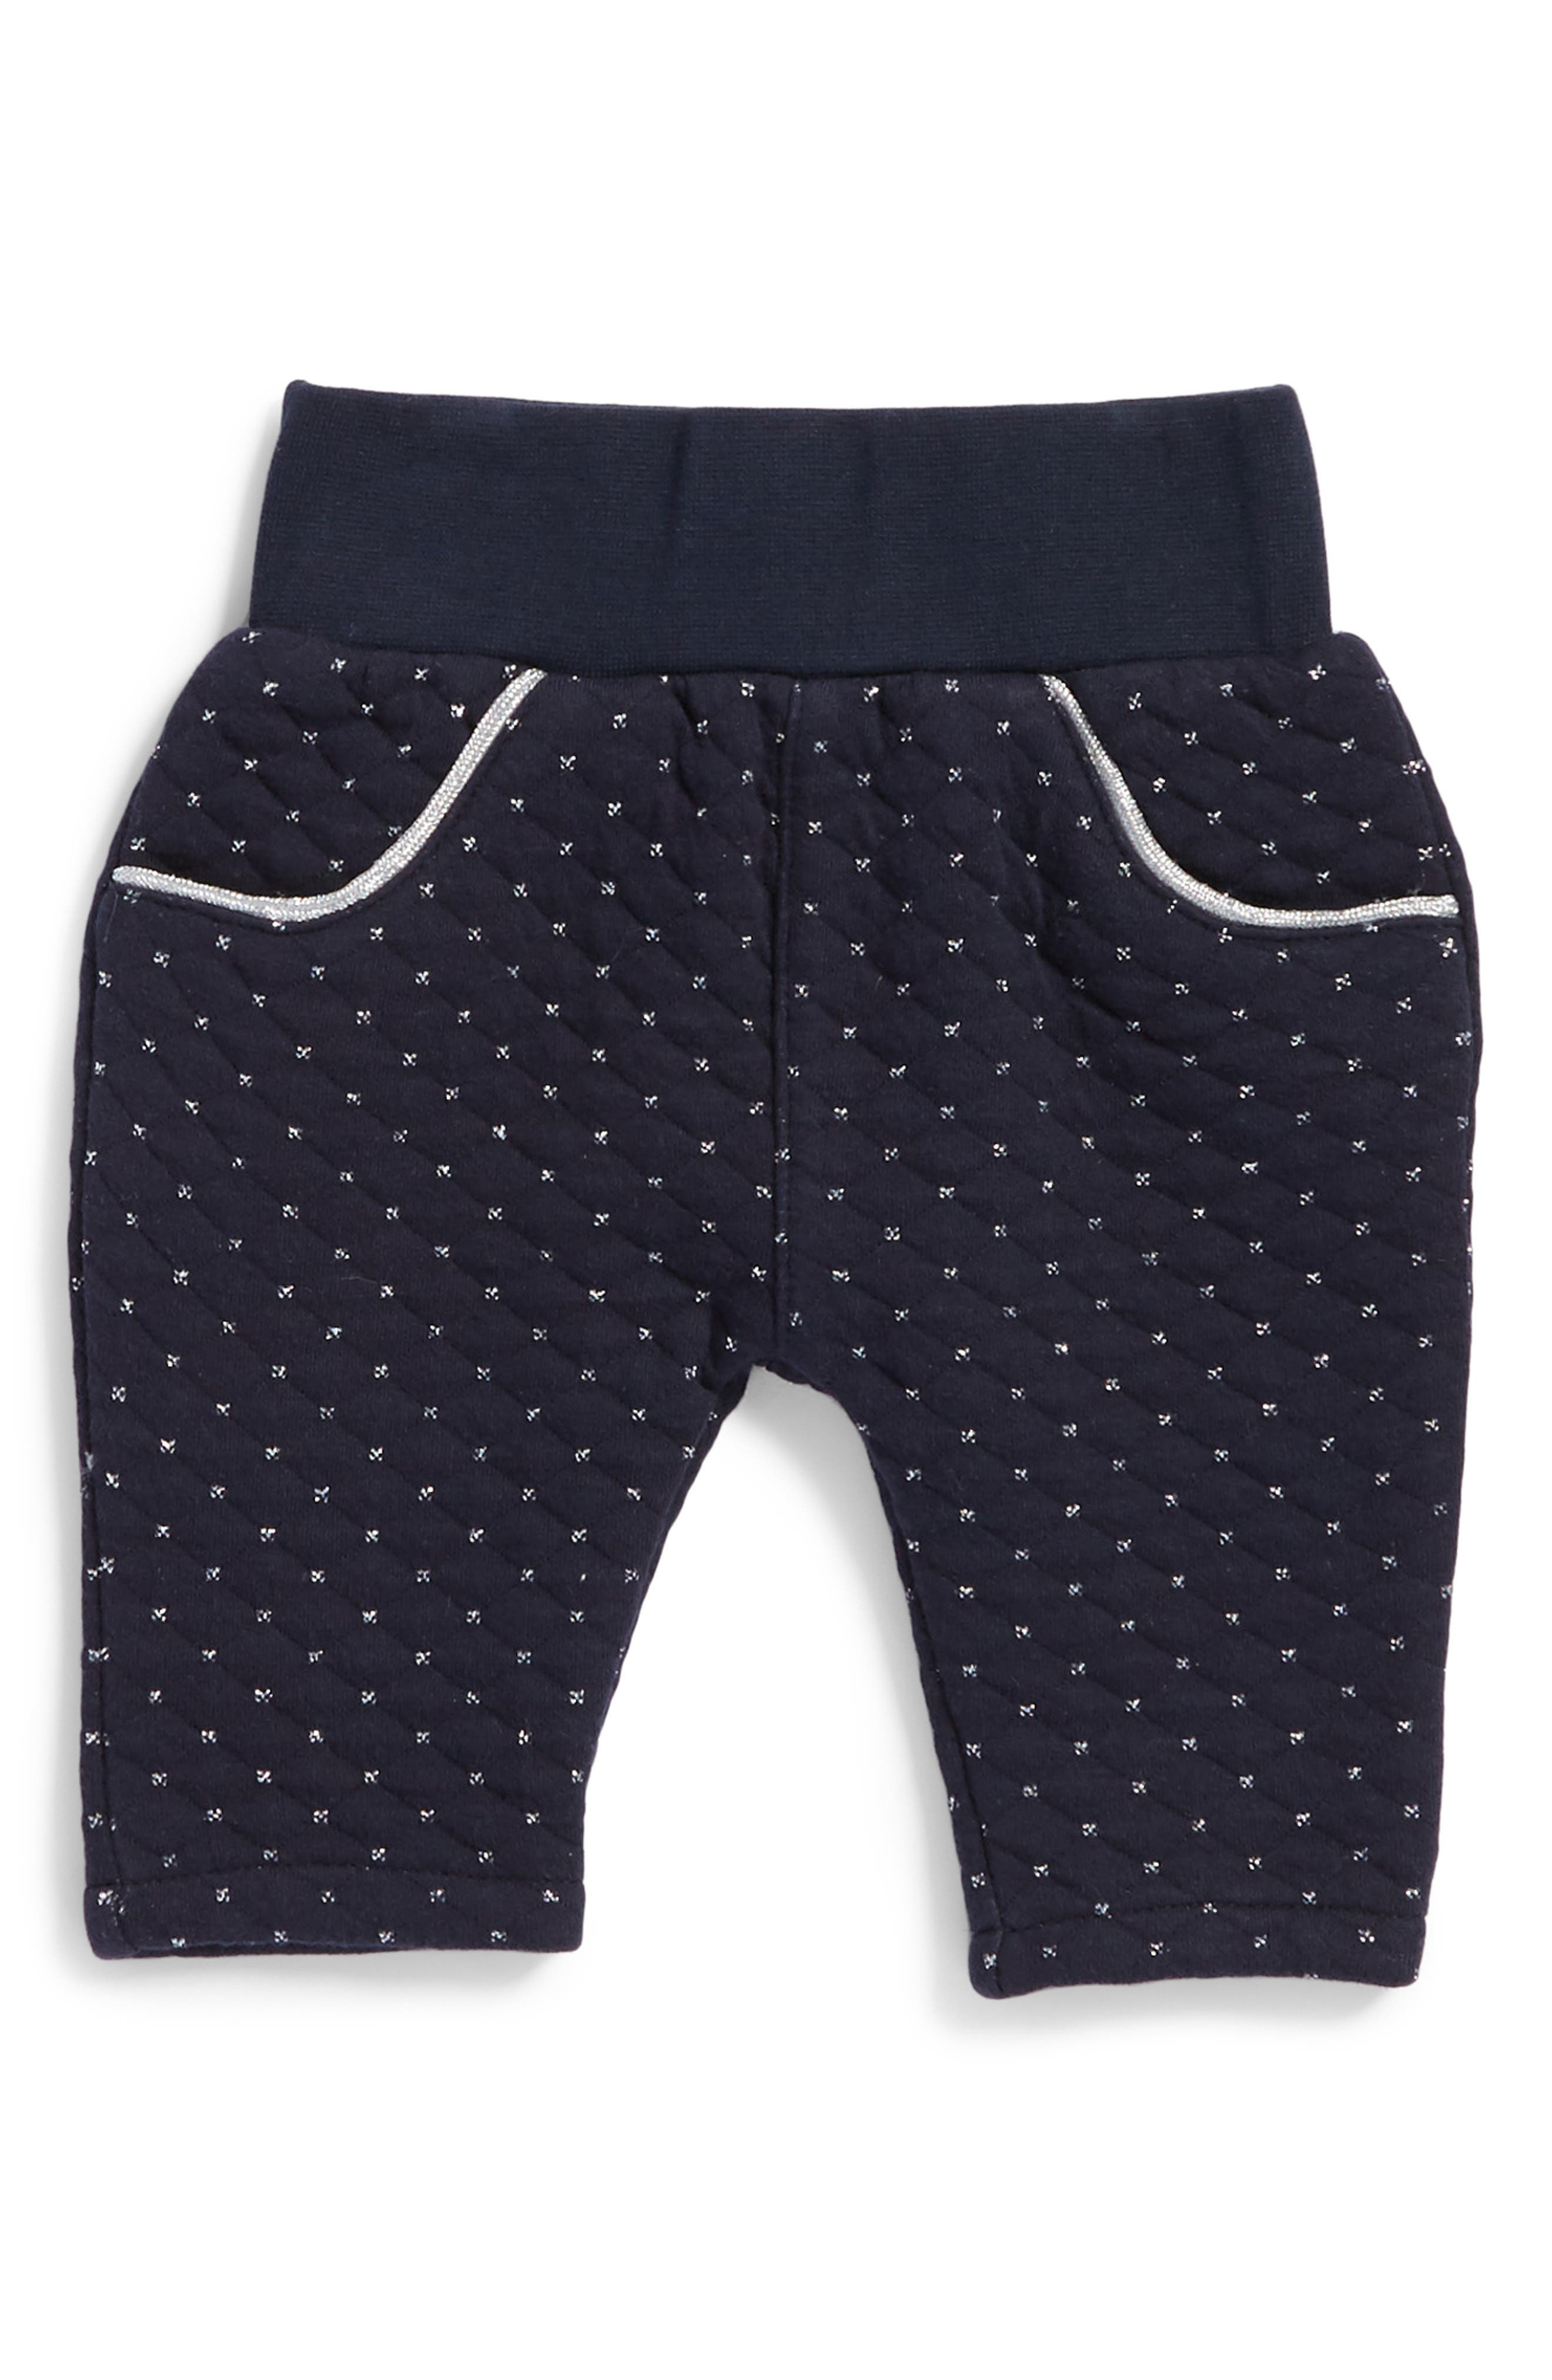 Alternate Image 1 Selected - Robeeze® Quilted Pants (Baby Girl)